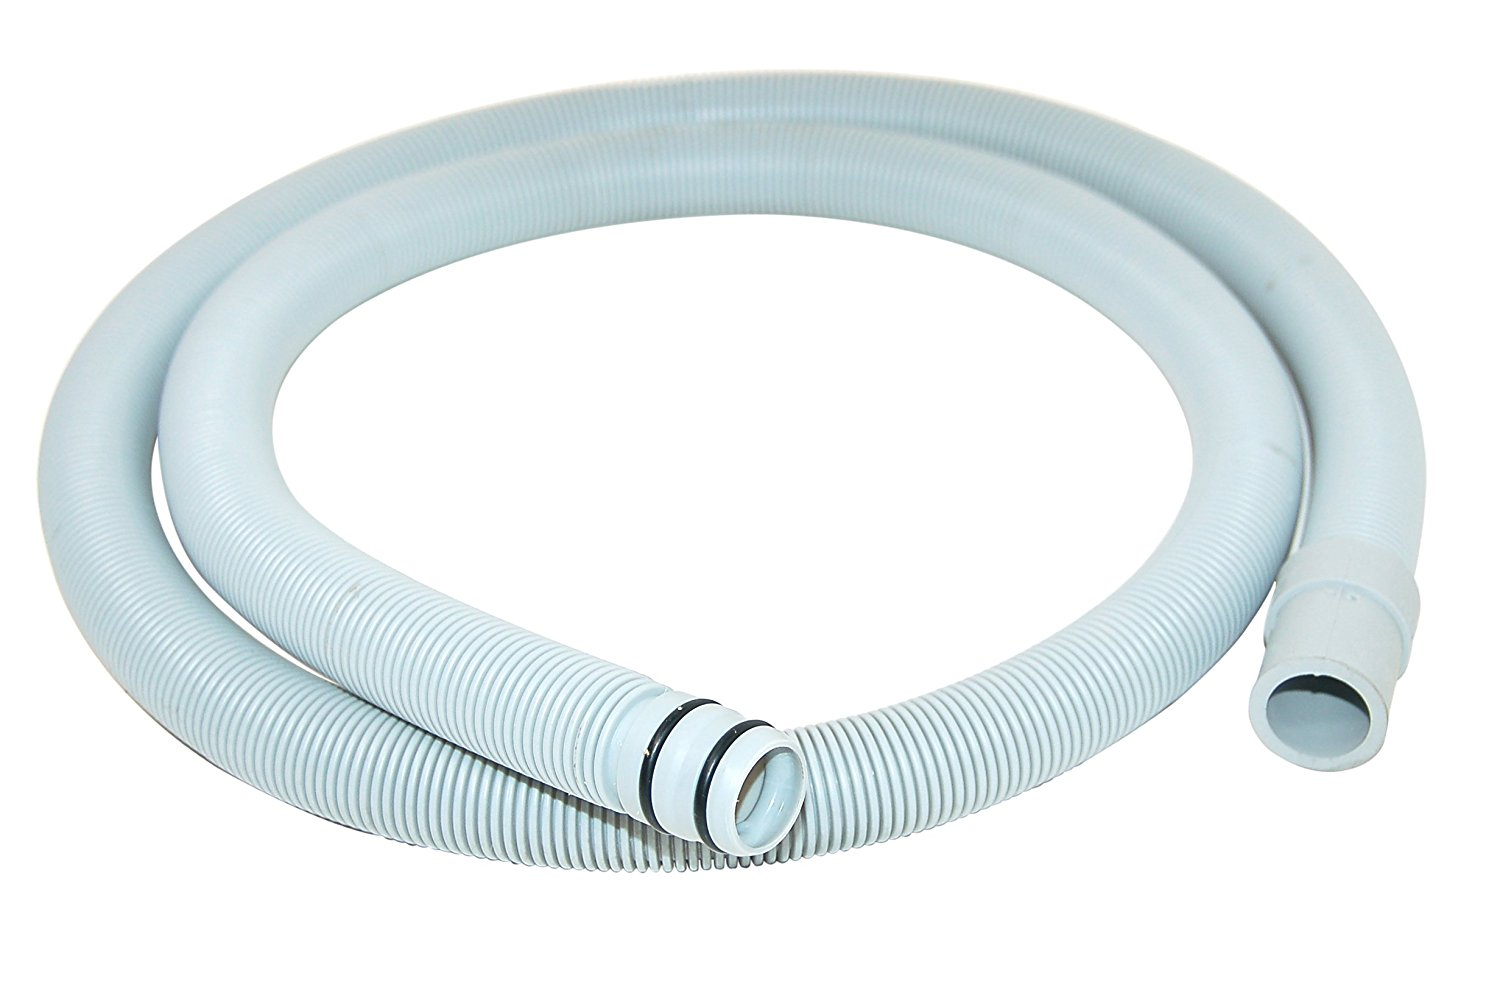 Description of HOSE-DRAIN